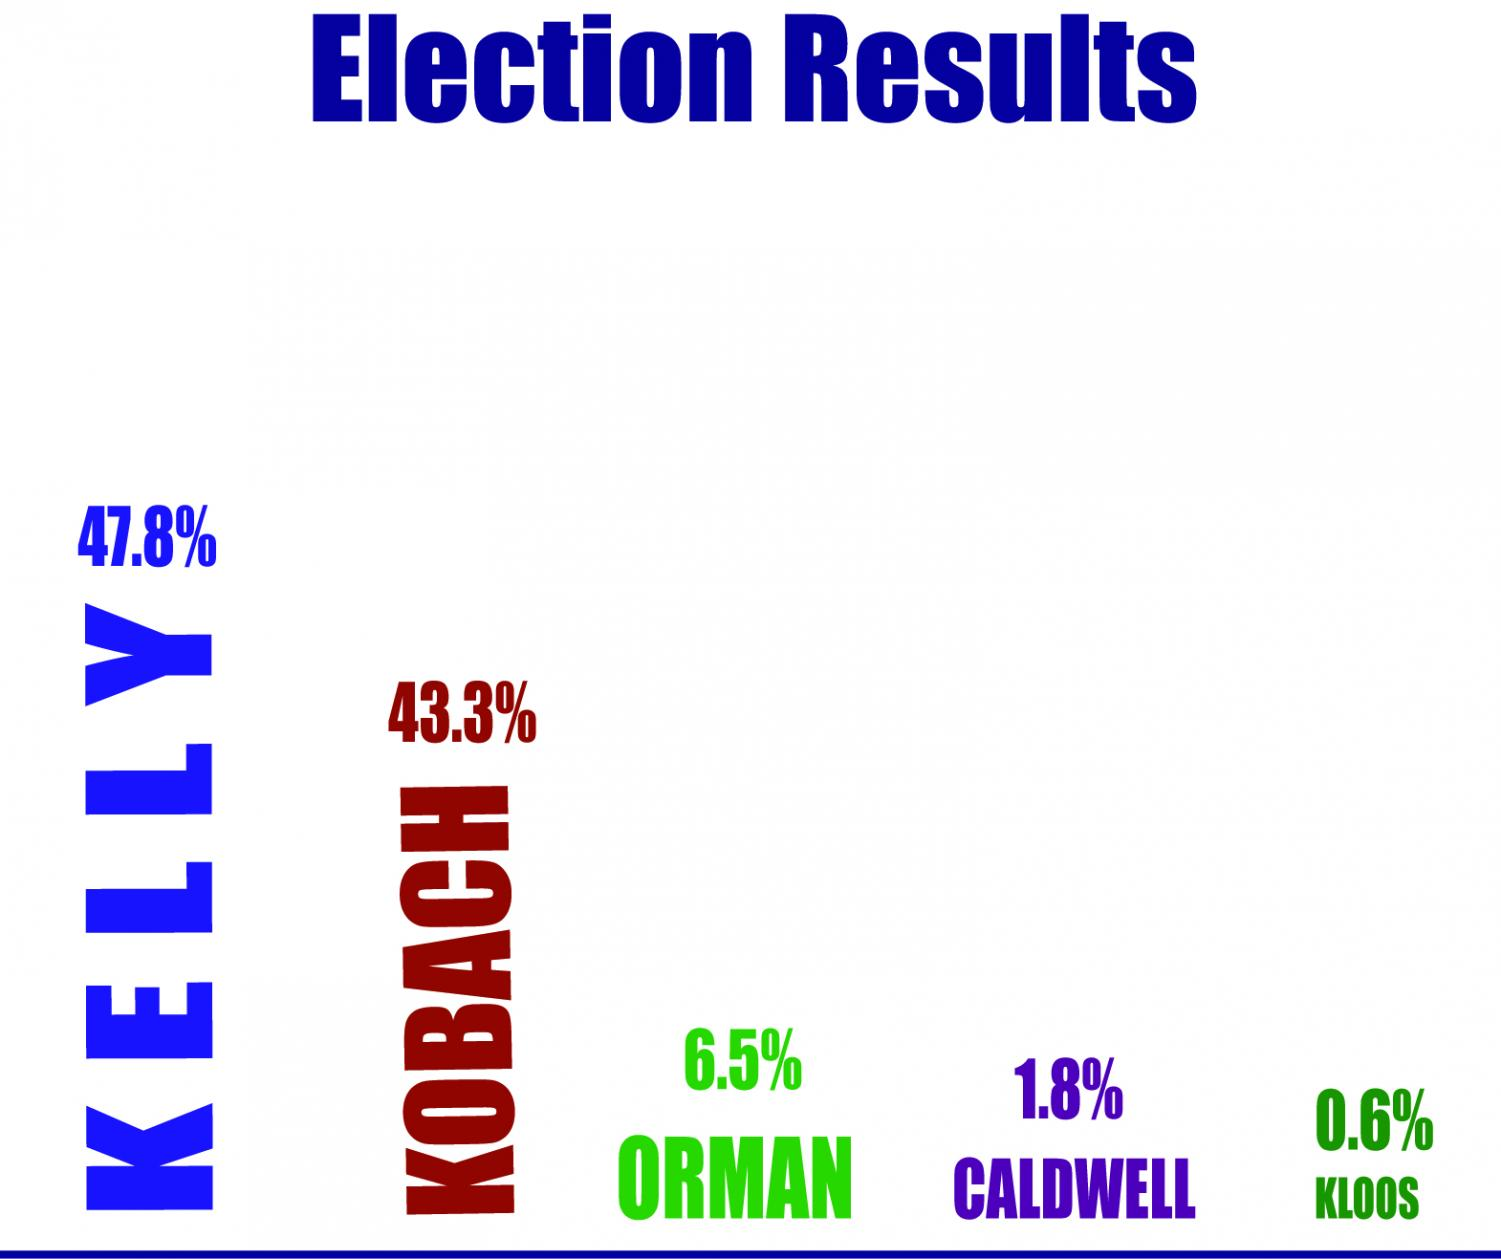 Laura Kelly won the election for Kansas State Governor with 47.8 percent  of the popular vote.